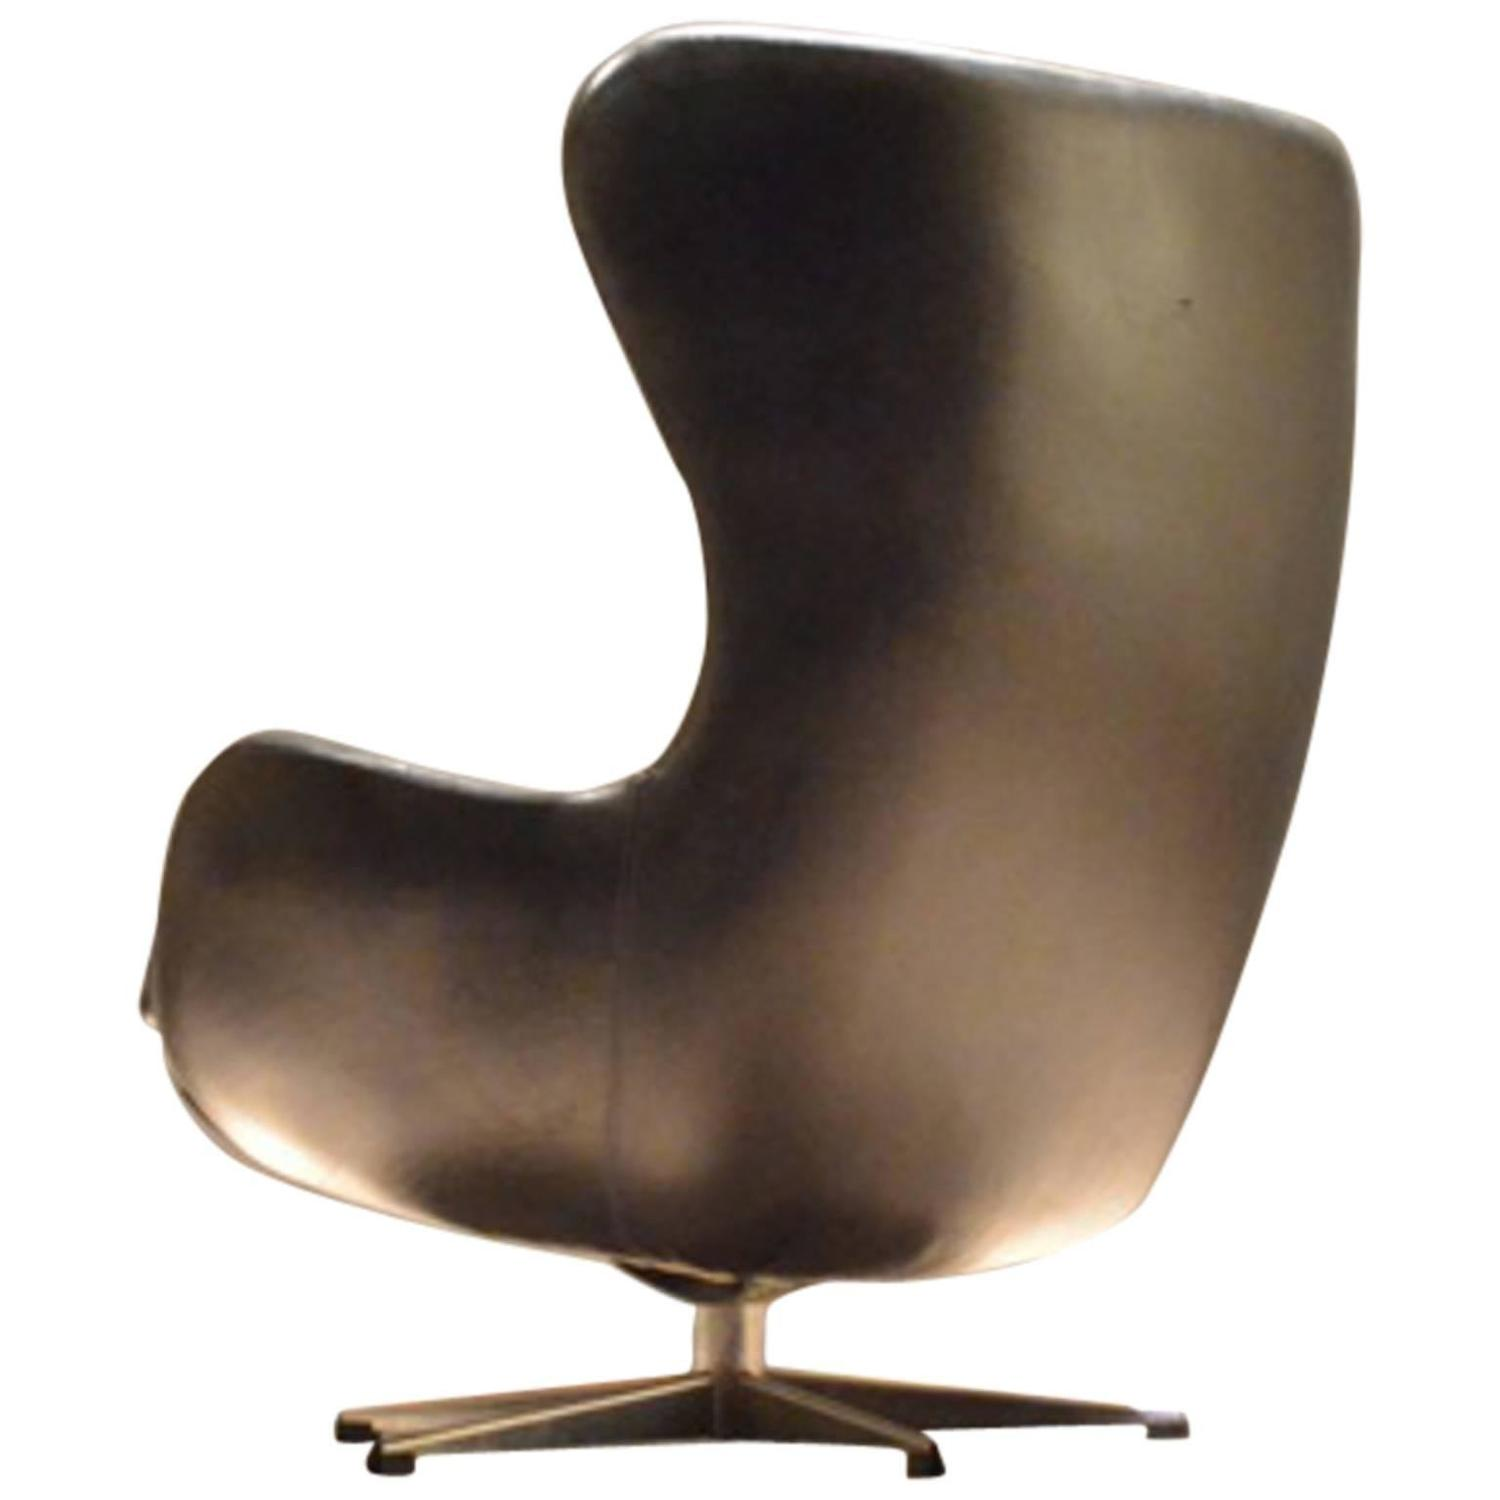 Danish Black Leather Egg Shaped Cocoon Easy Chair At 1stdibs